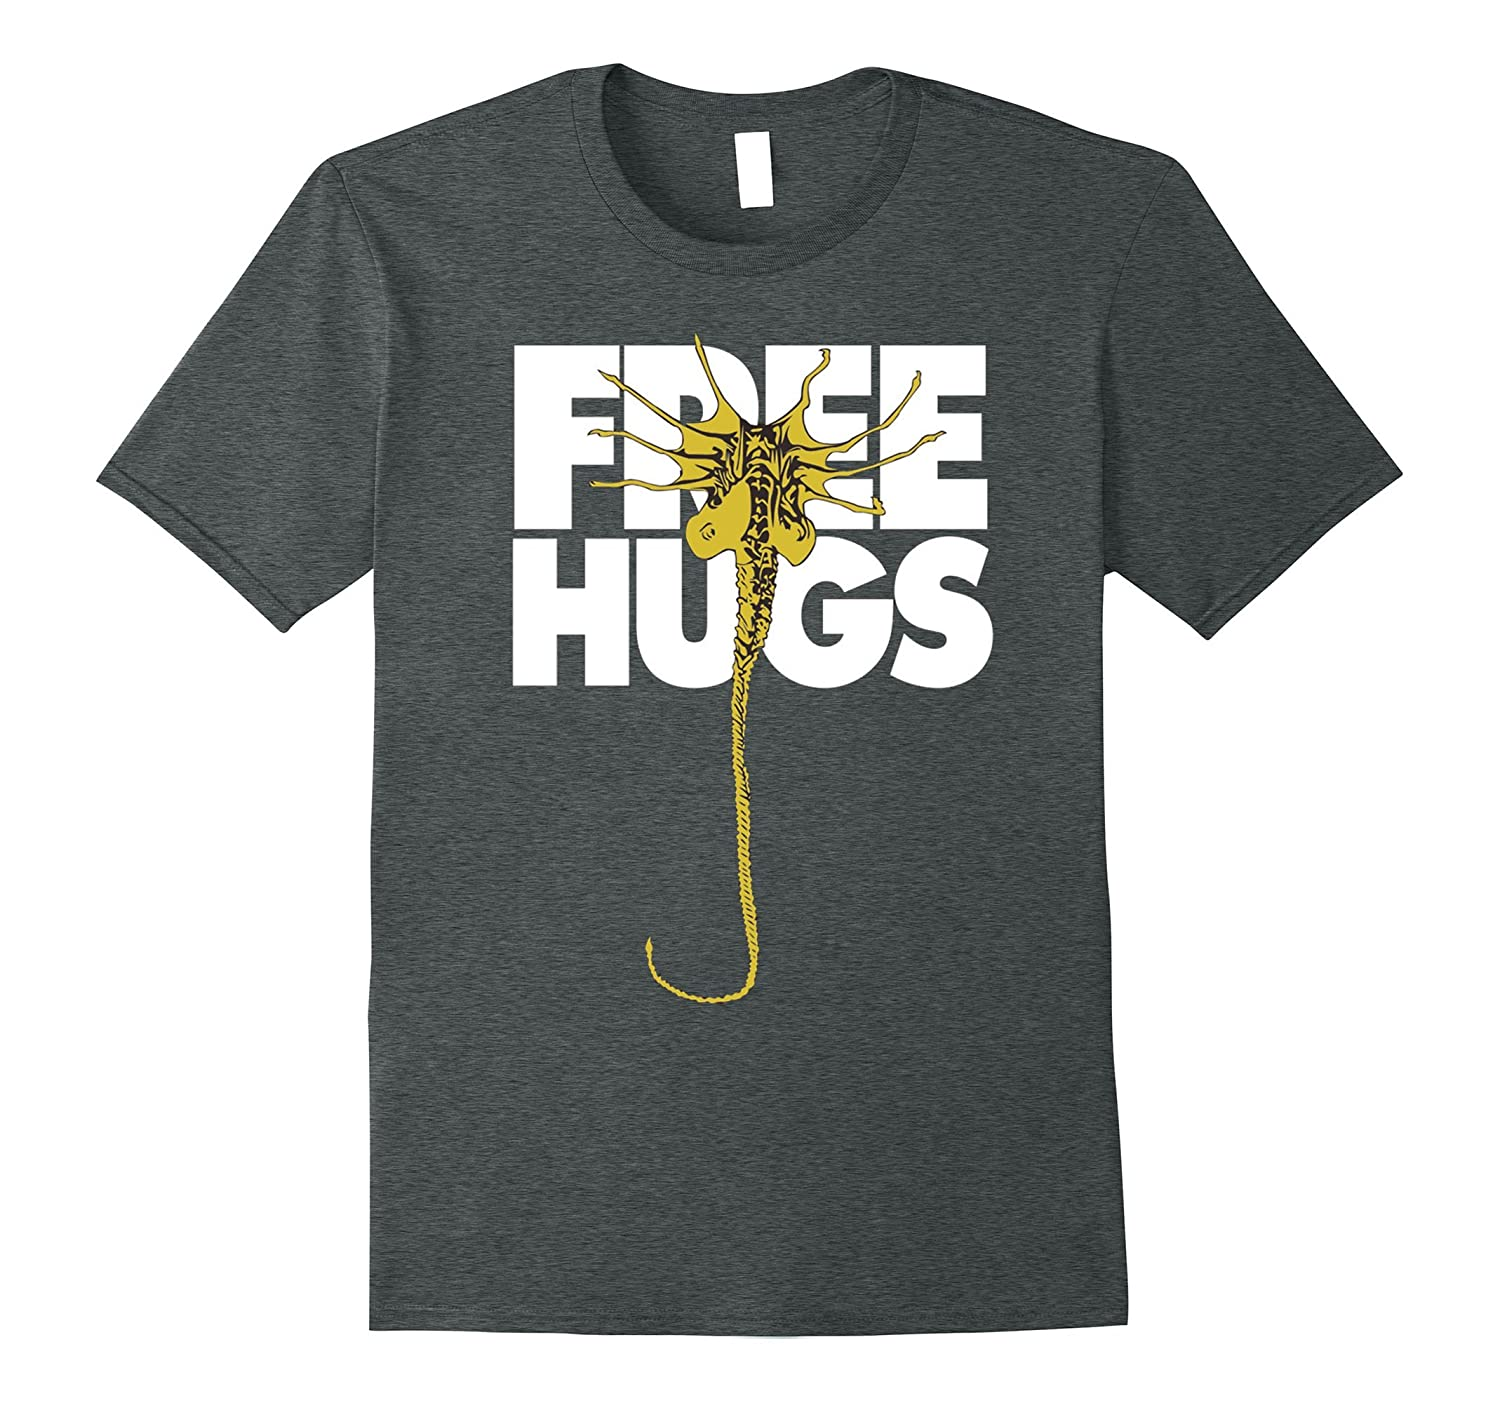 Free Hugs Horror Shirt-Vaci